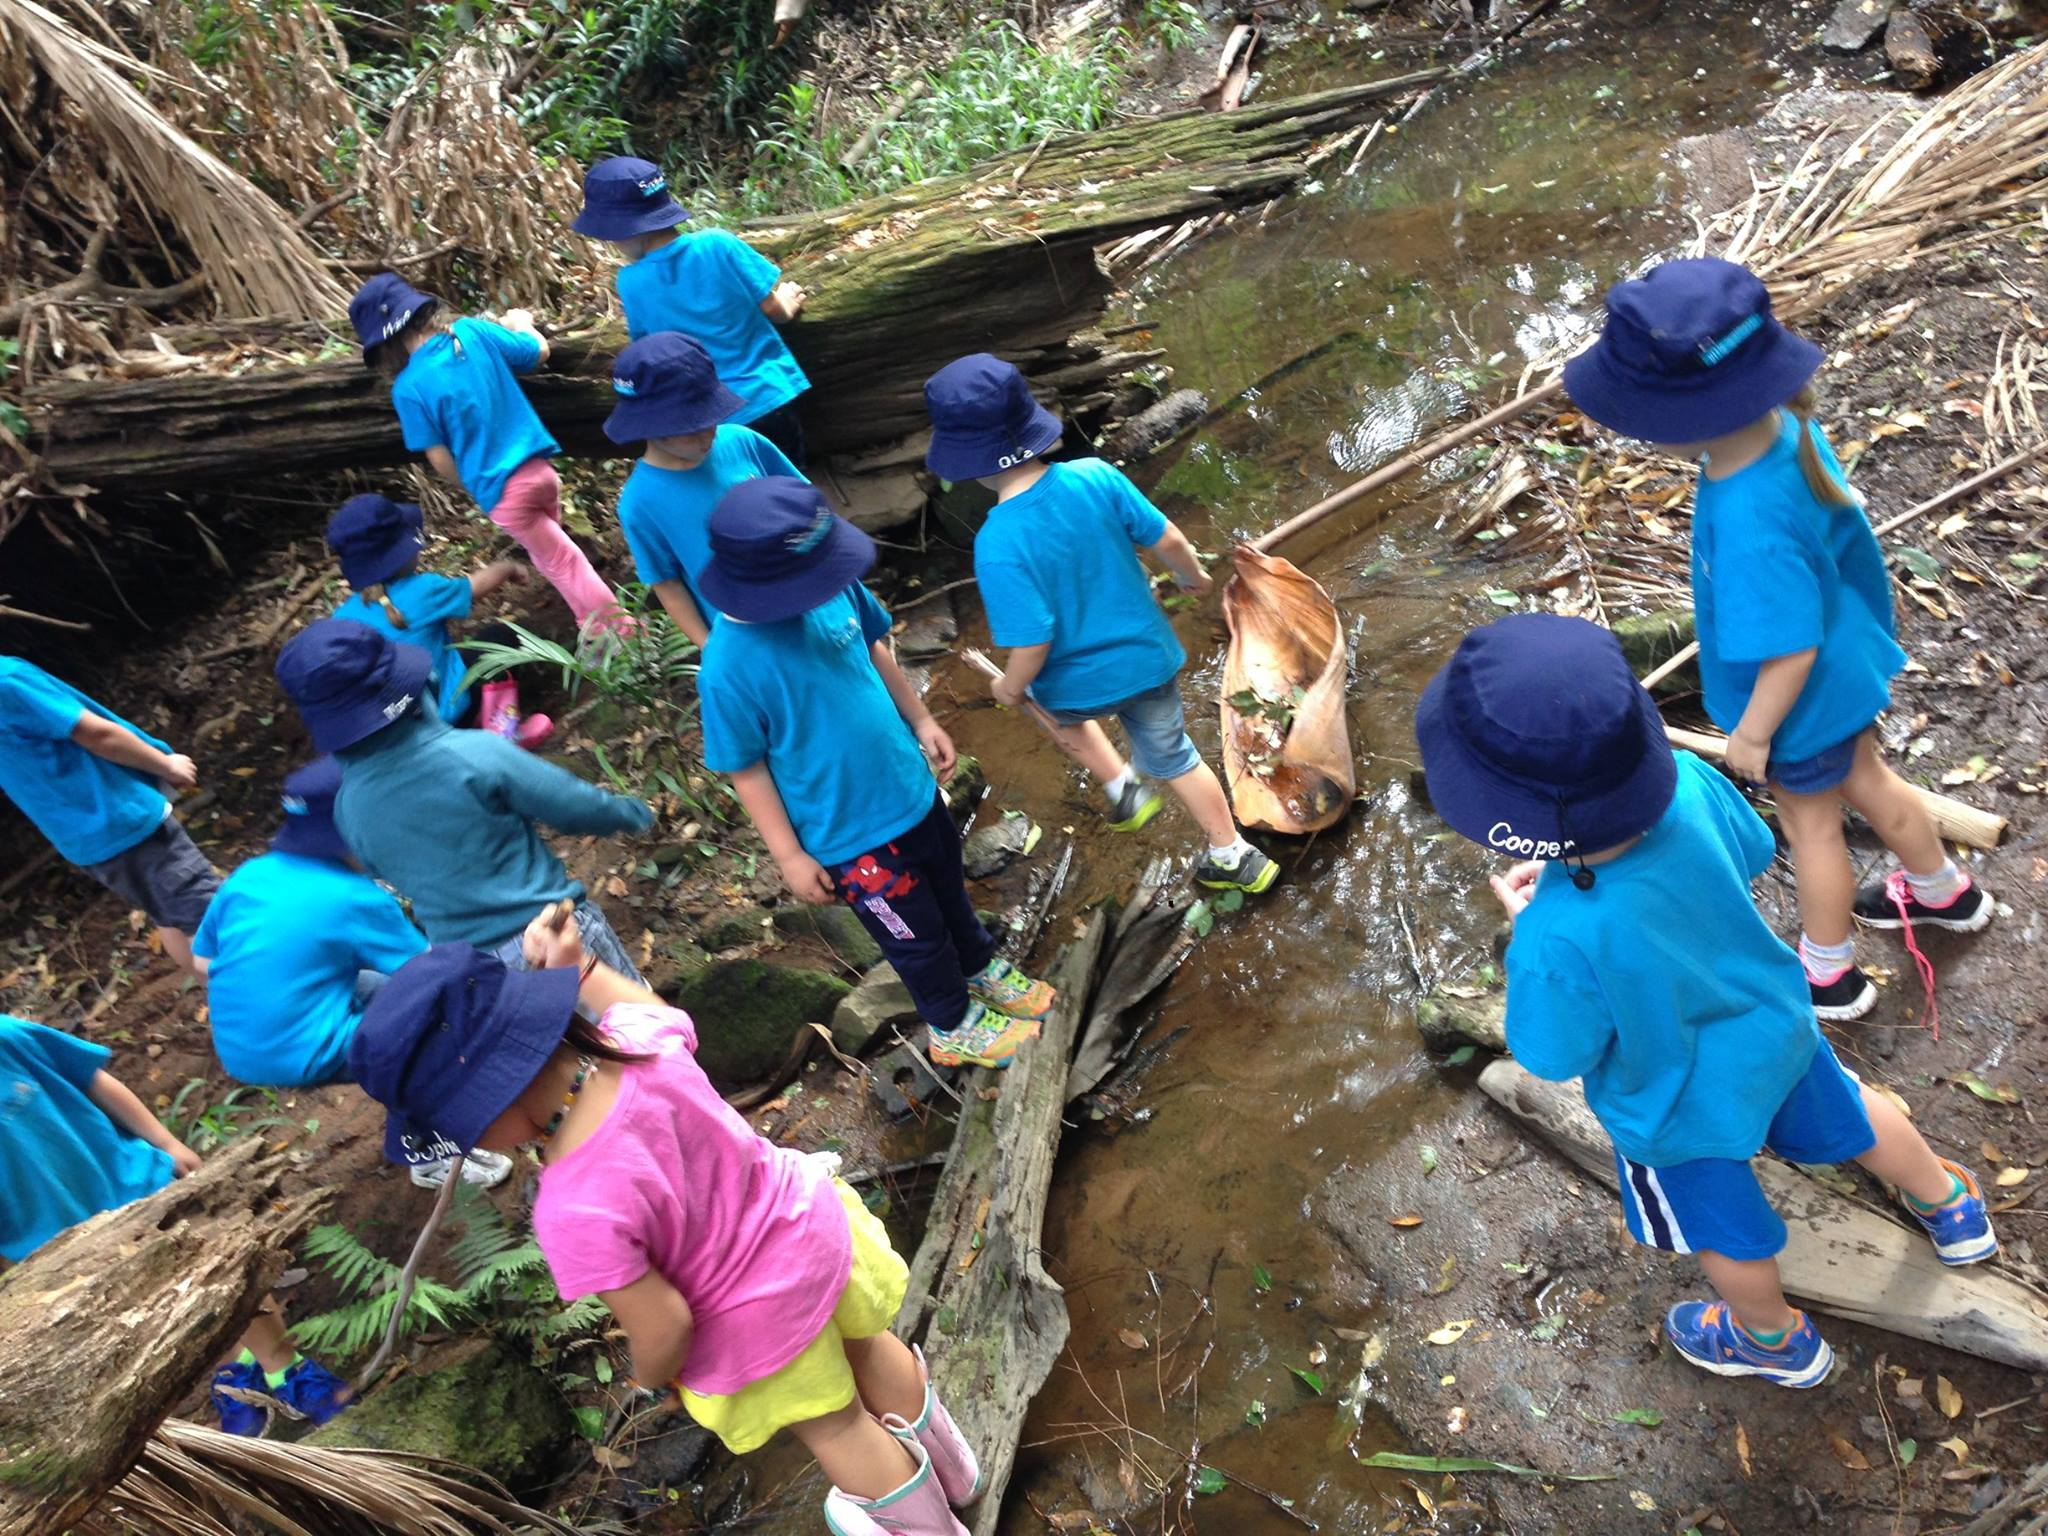 Kindy students exploring the creek at Bush Kindy at Suncoasst Little Learners